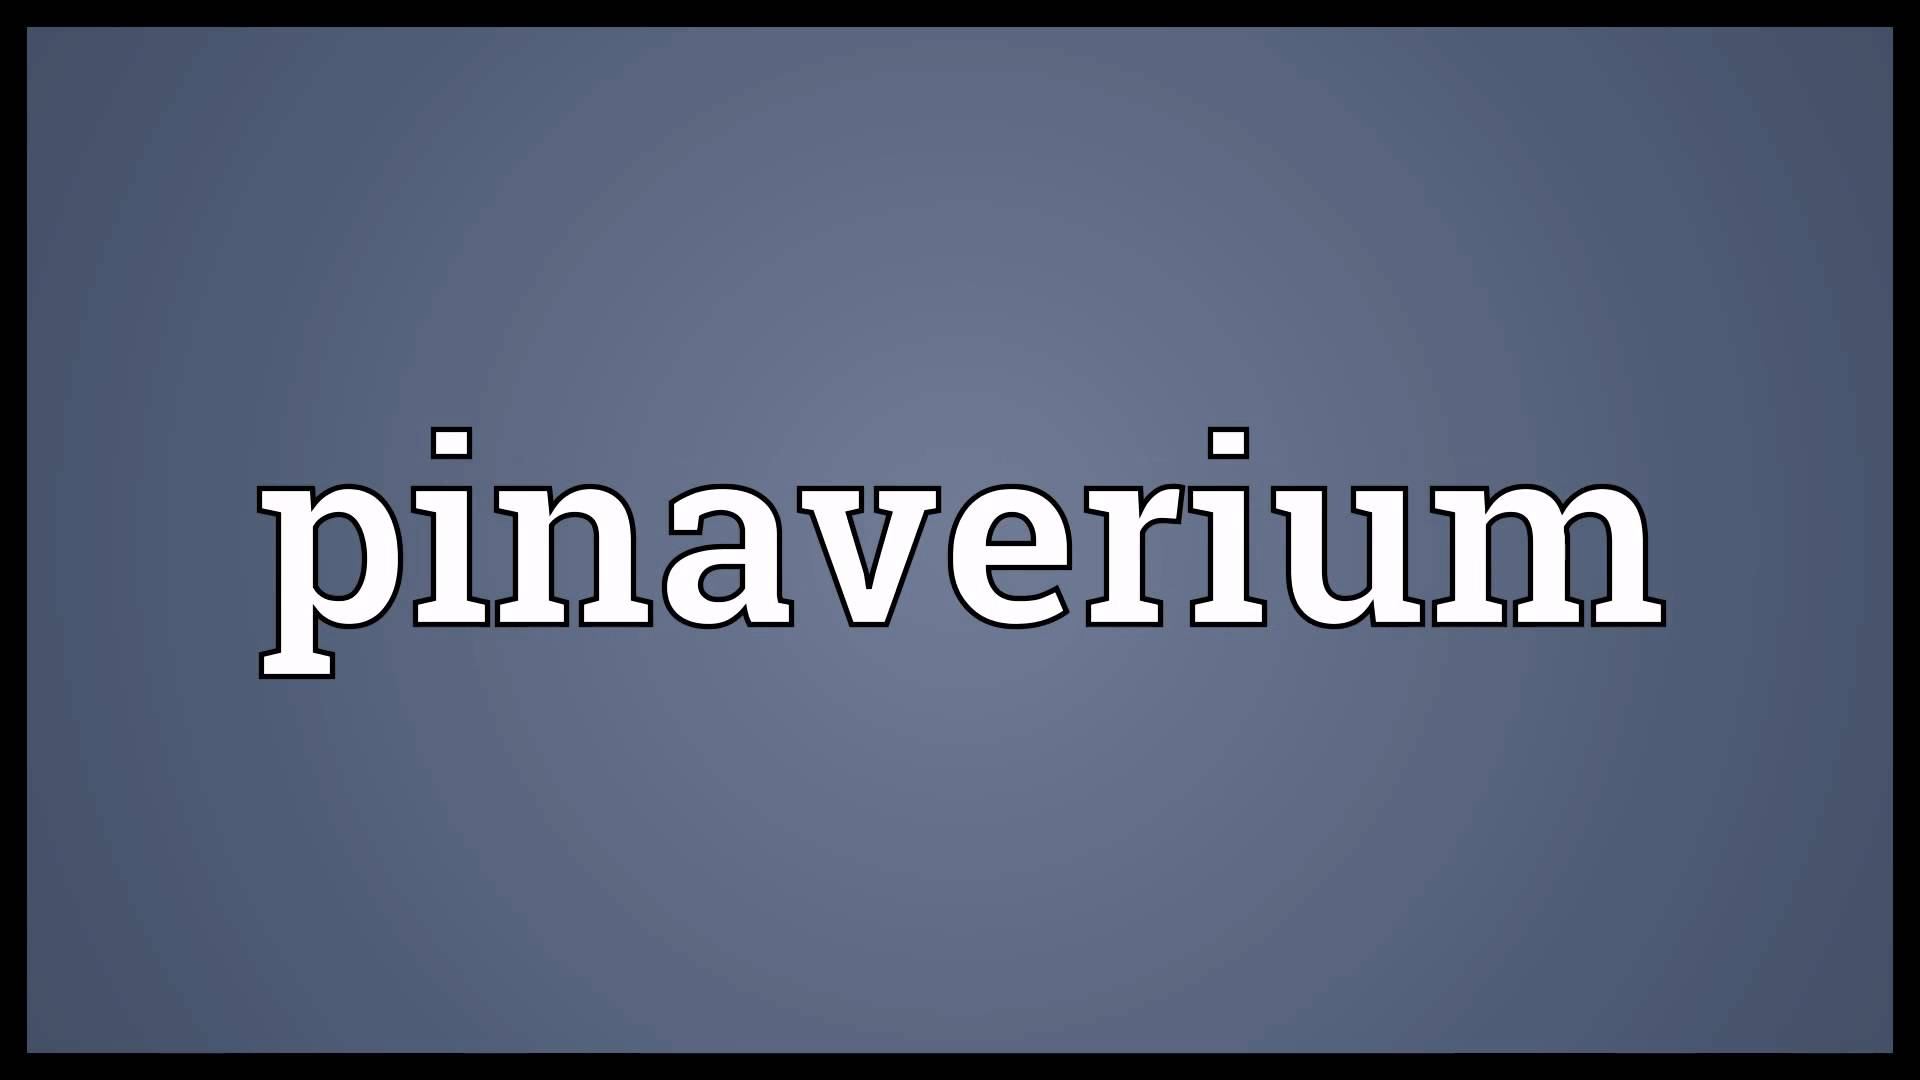 Pinaverium May Provide Relief from Irritable Bowel Syndrome